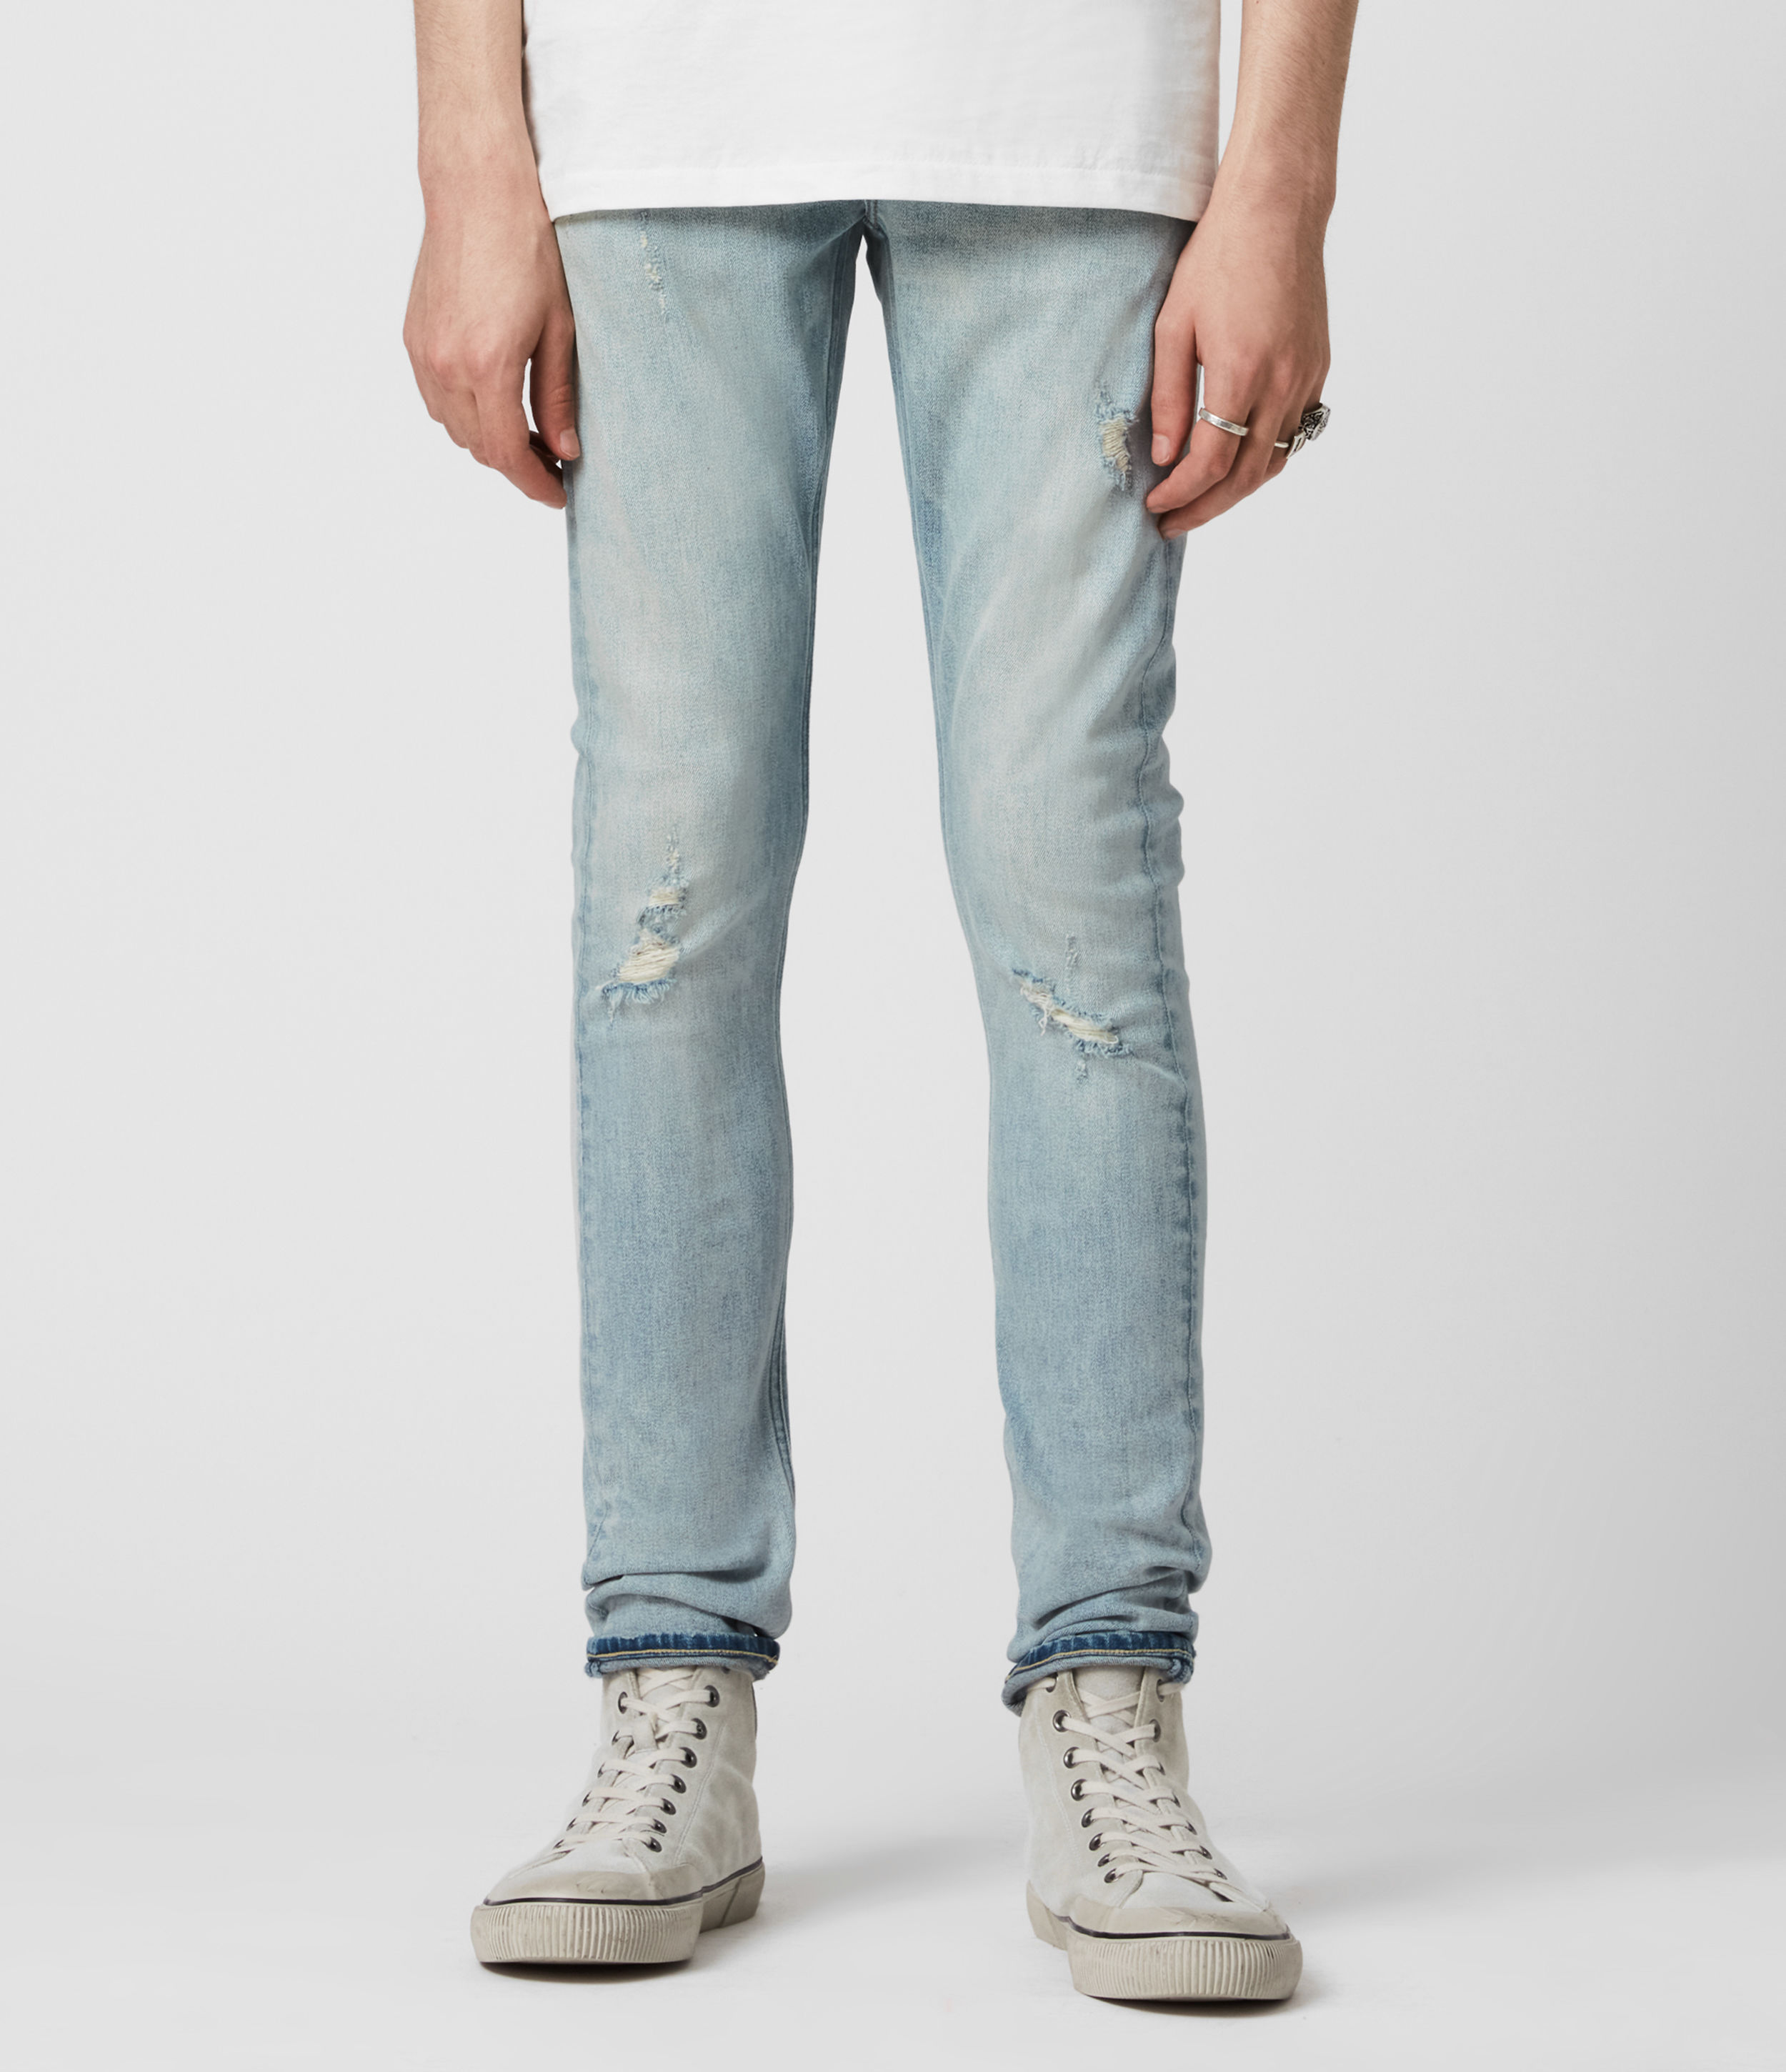 AllSaints Cigarette Damaged Skinny Jeans, Light Indigo